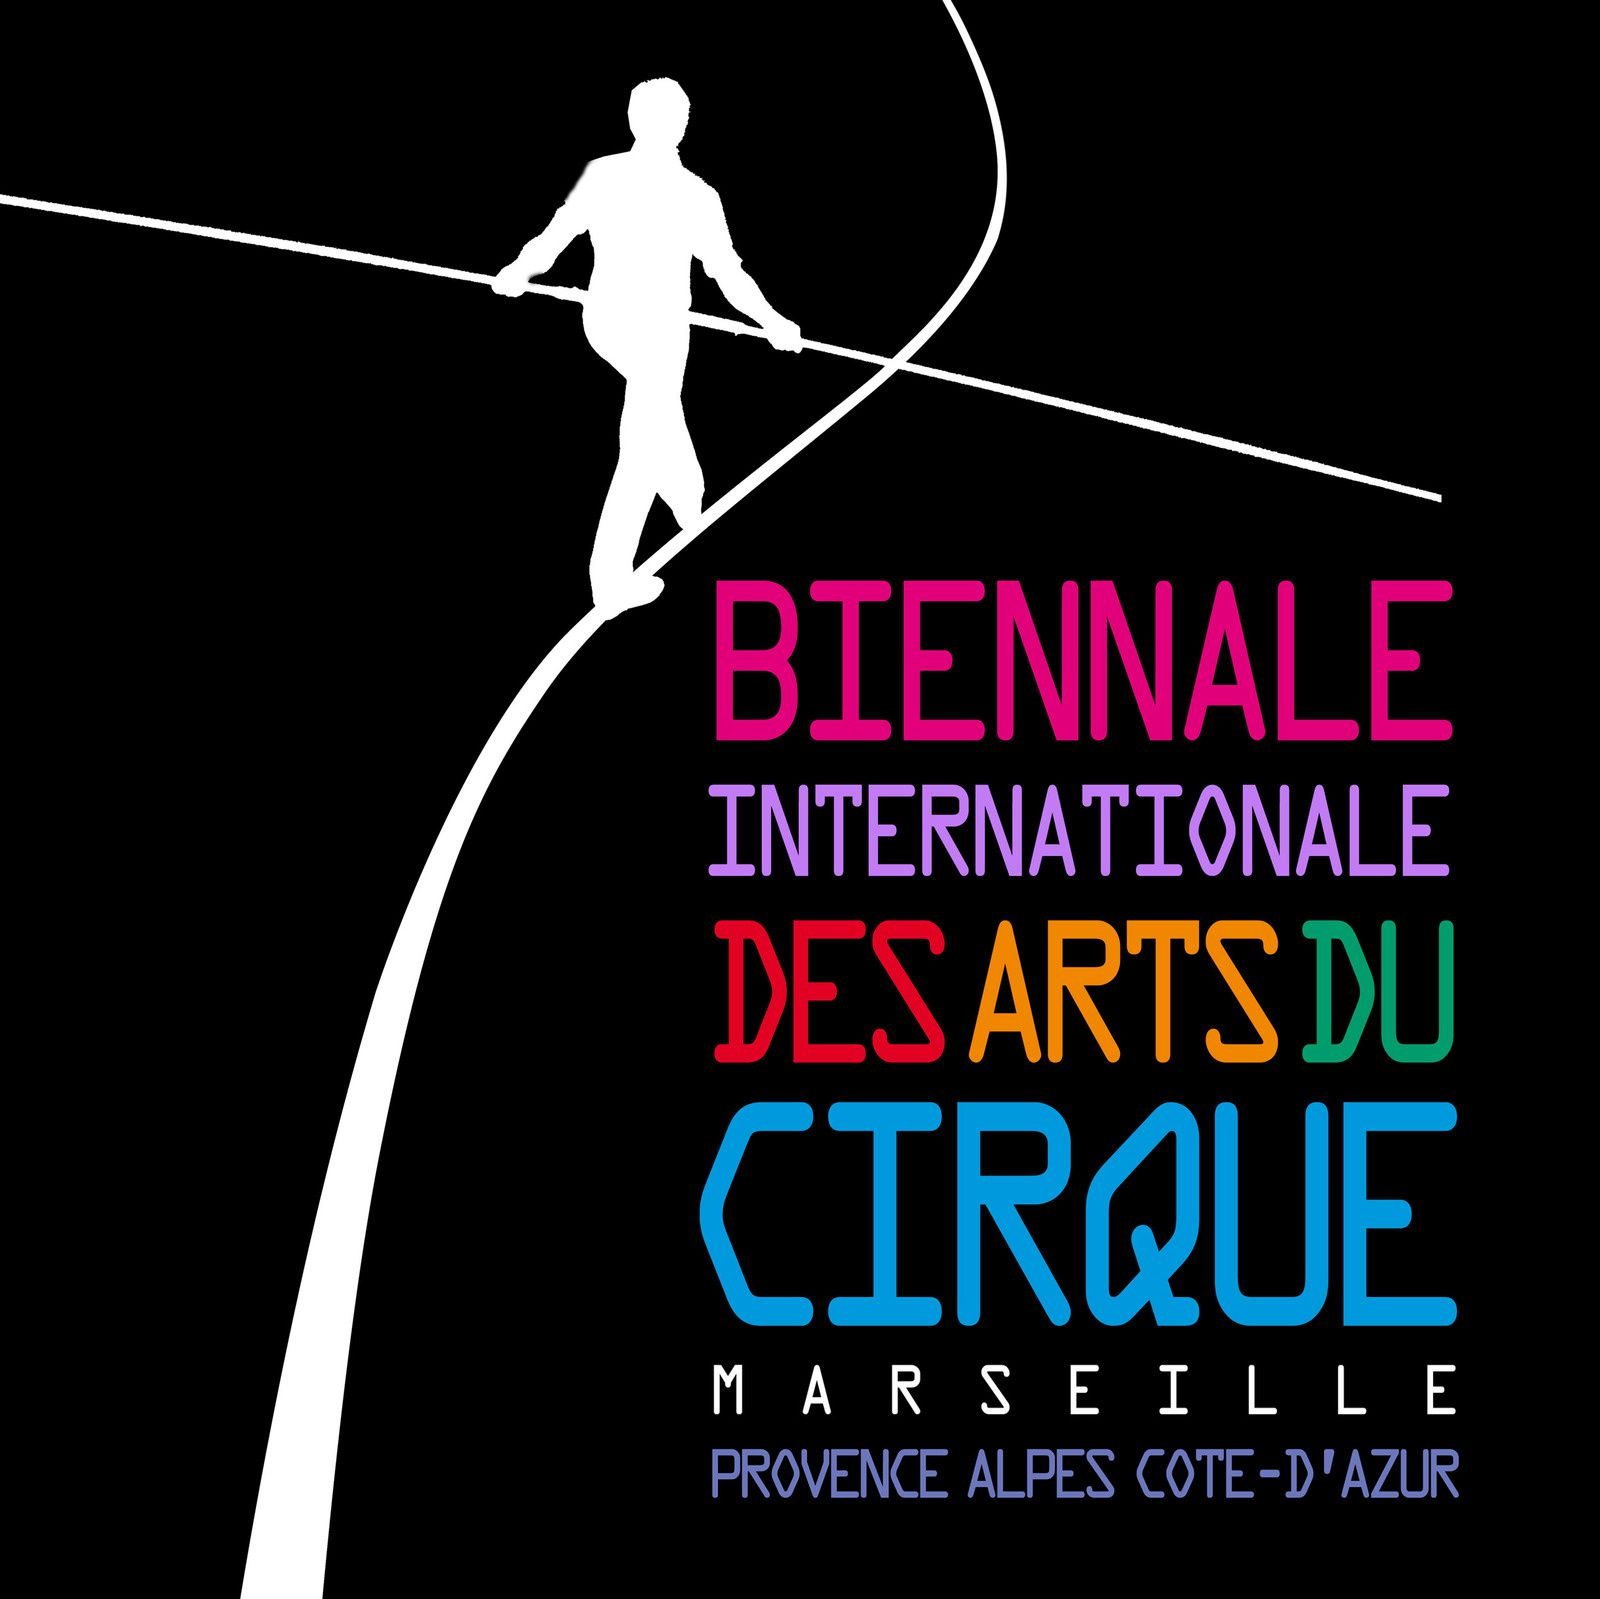 Raje Marseille - Invités de la semaine : Jean-Christophe Léonard de la société Galoo et Guy Carrara, co-directeur de la Biennale Internationale des Arts du Cirque Marseille Provence-Alpes Côte d'Azur